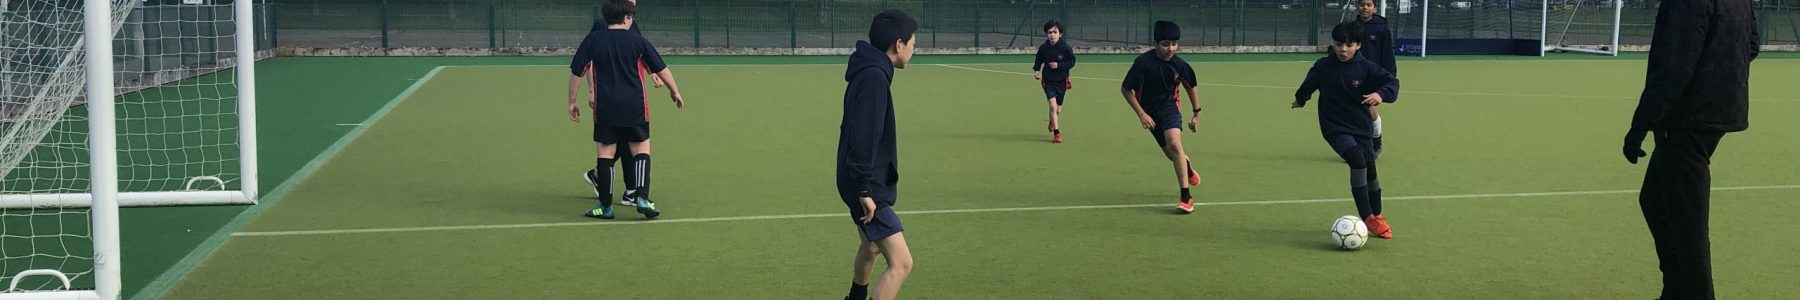 Football Practice on Astro Turf